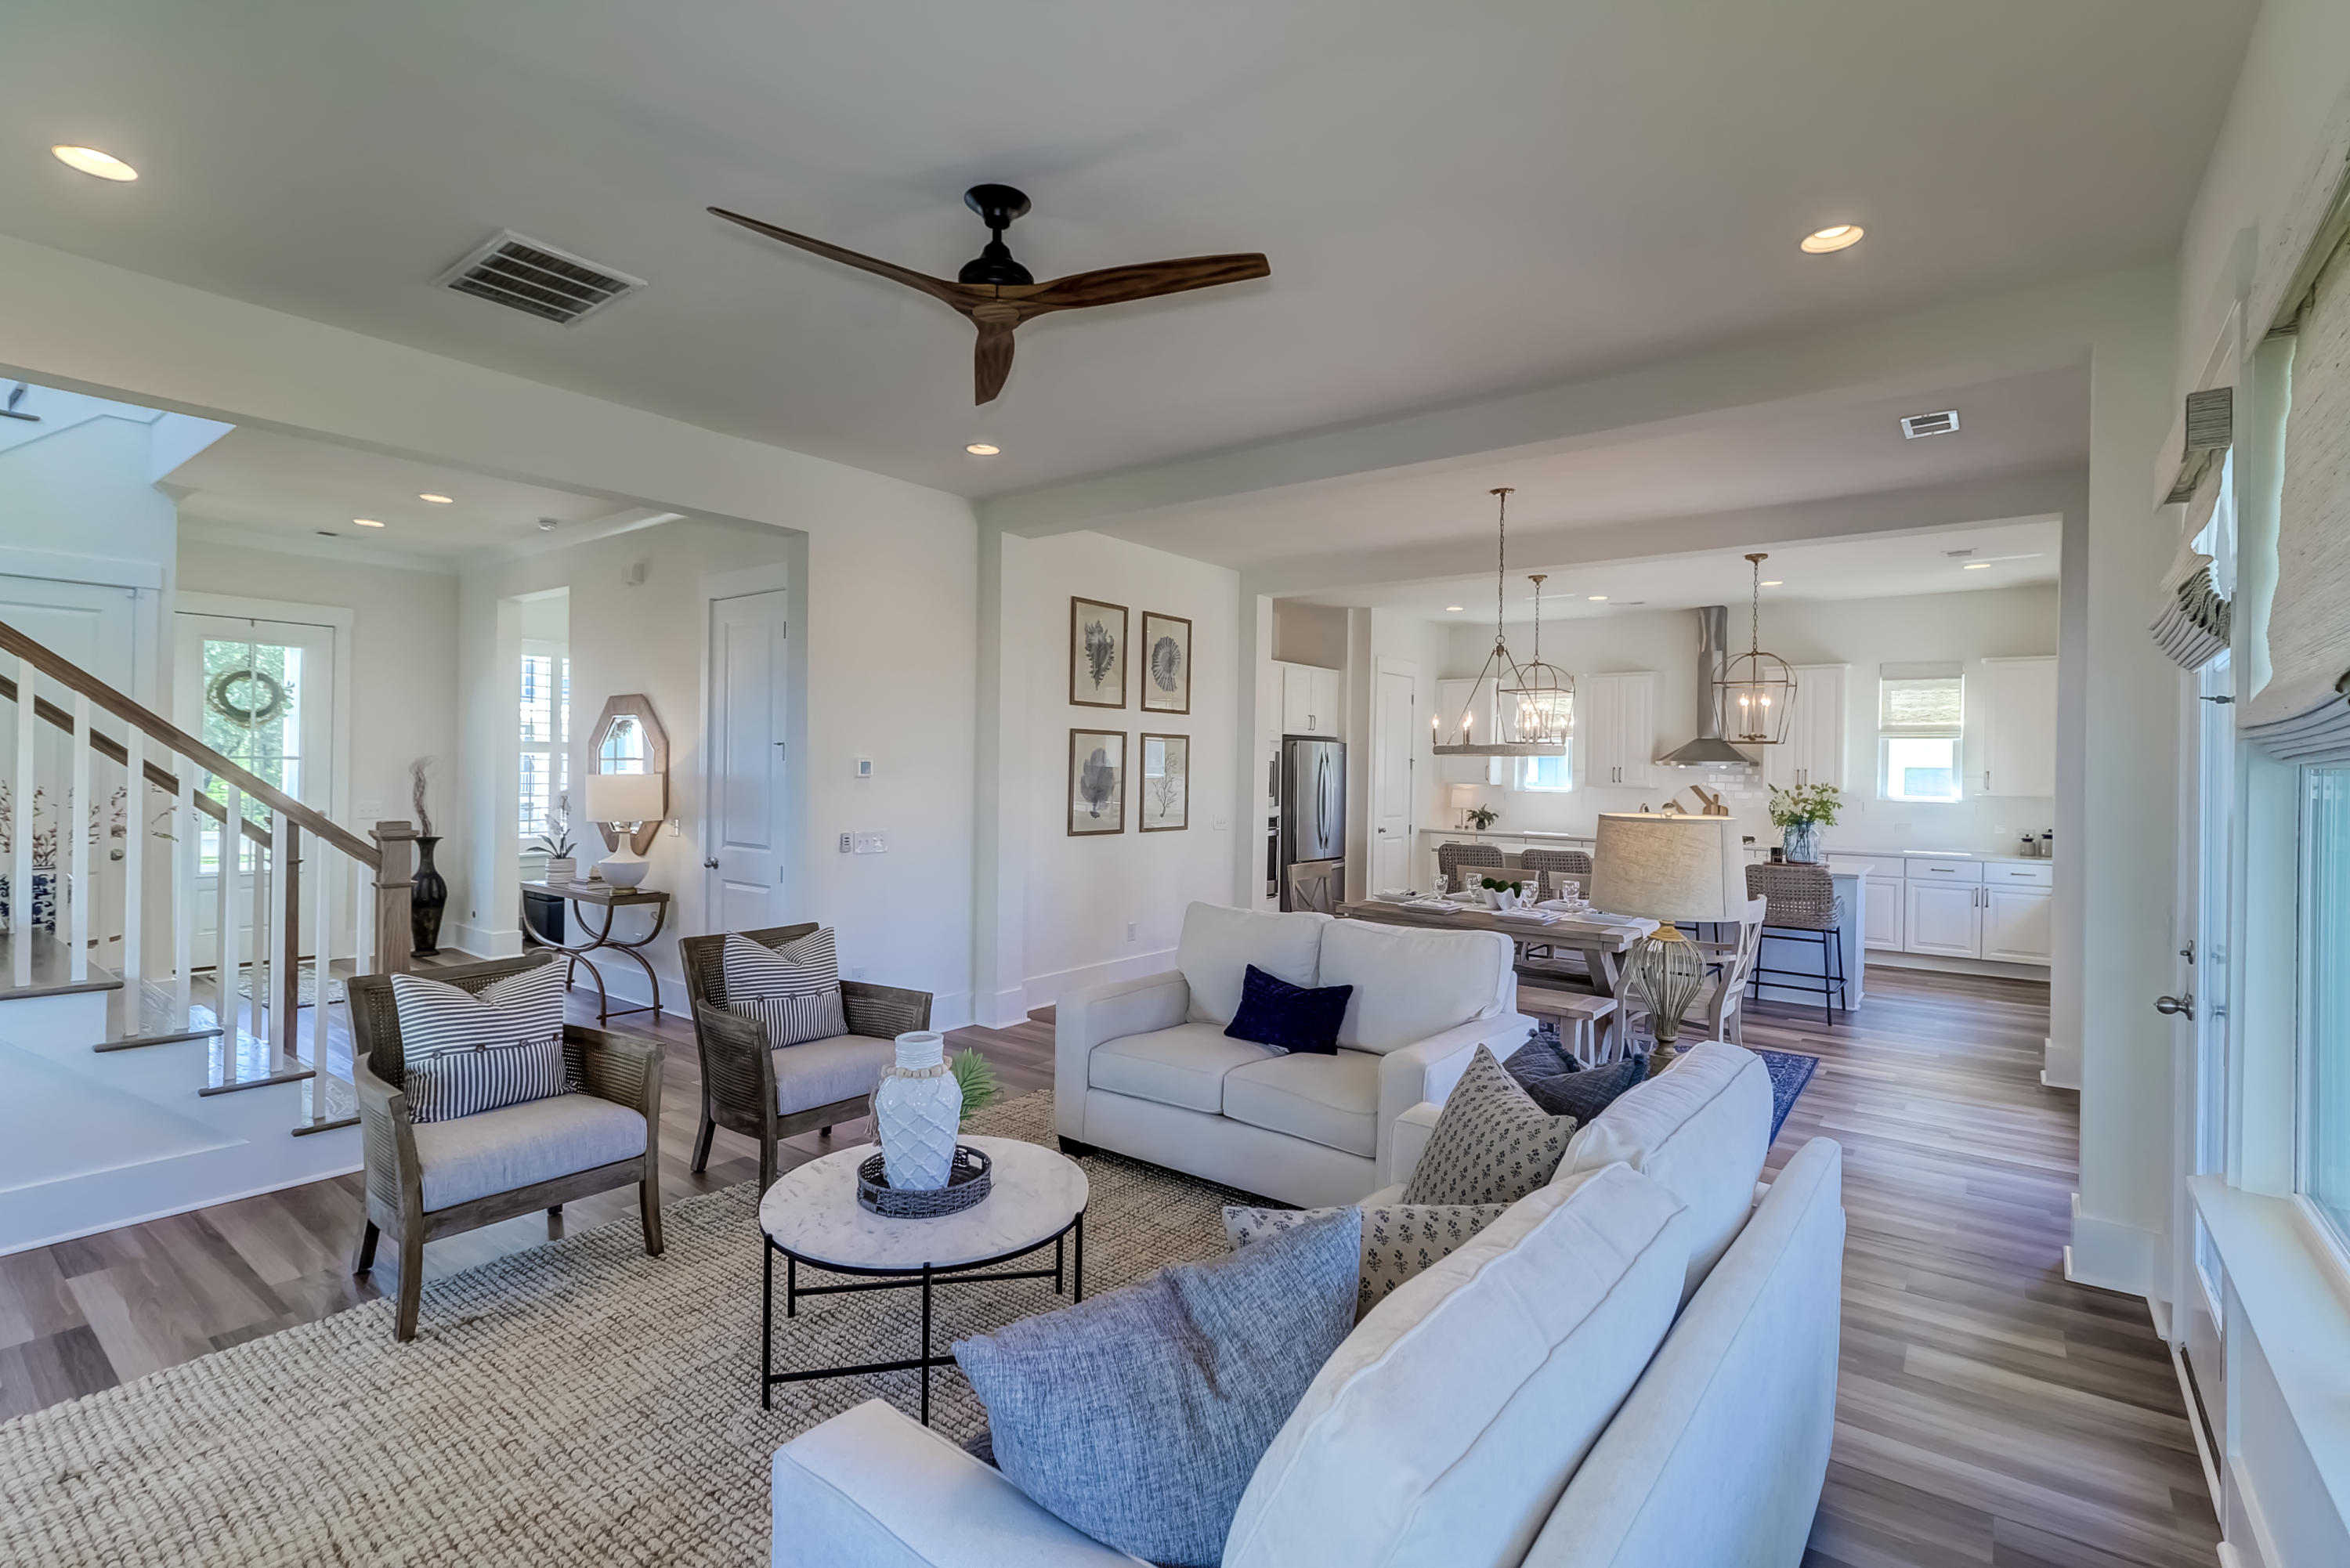 Stratton by the Sound Homes For Sale - 3609 Tidal Flat, Mount Pleasant, SC - 13